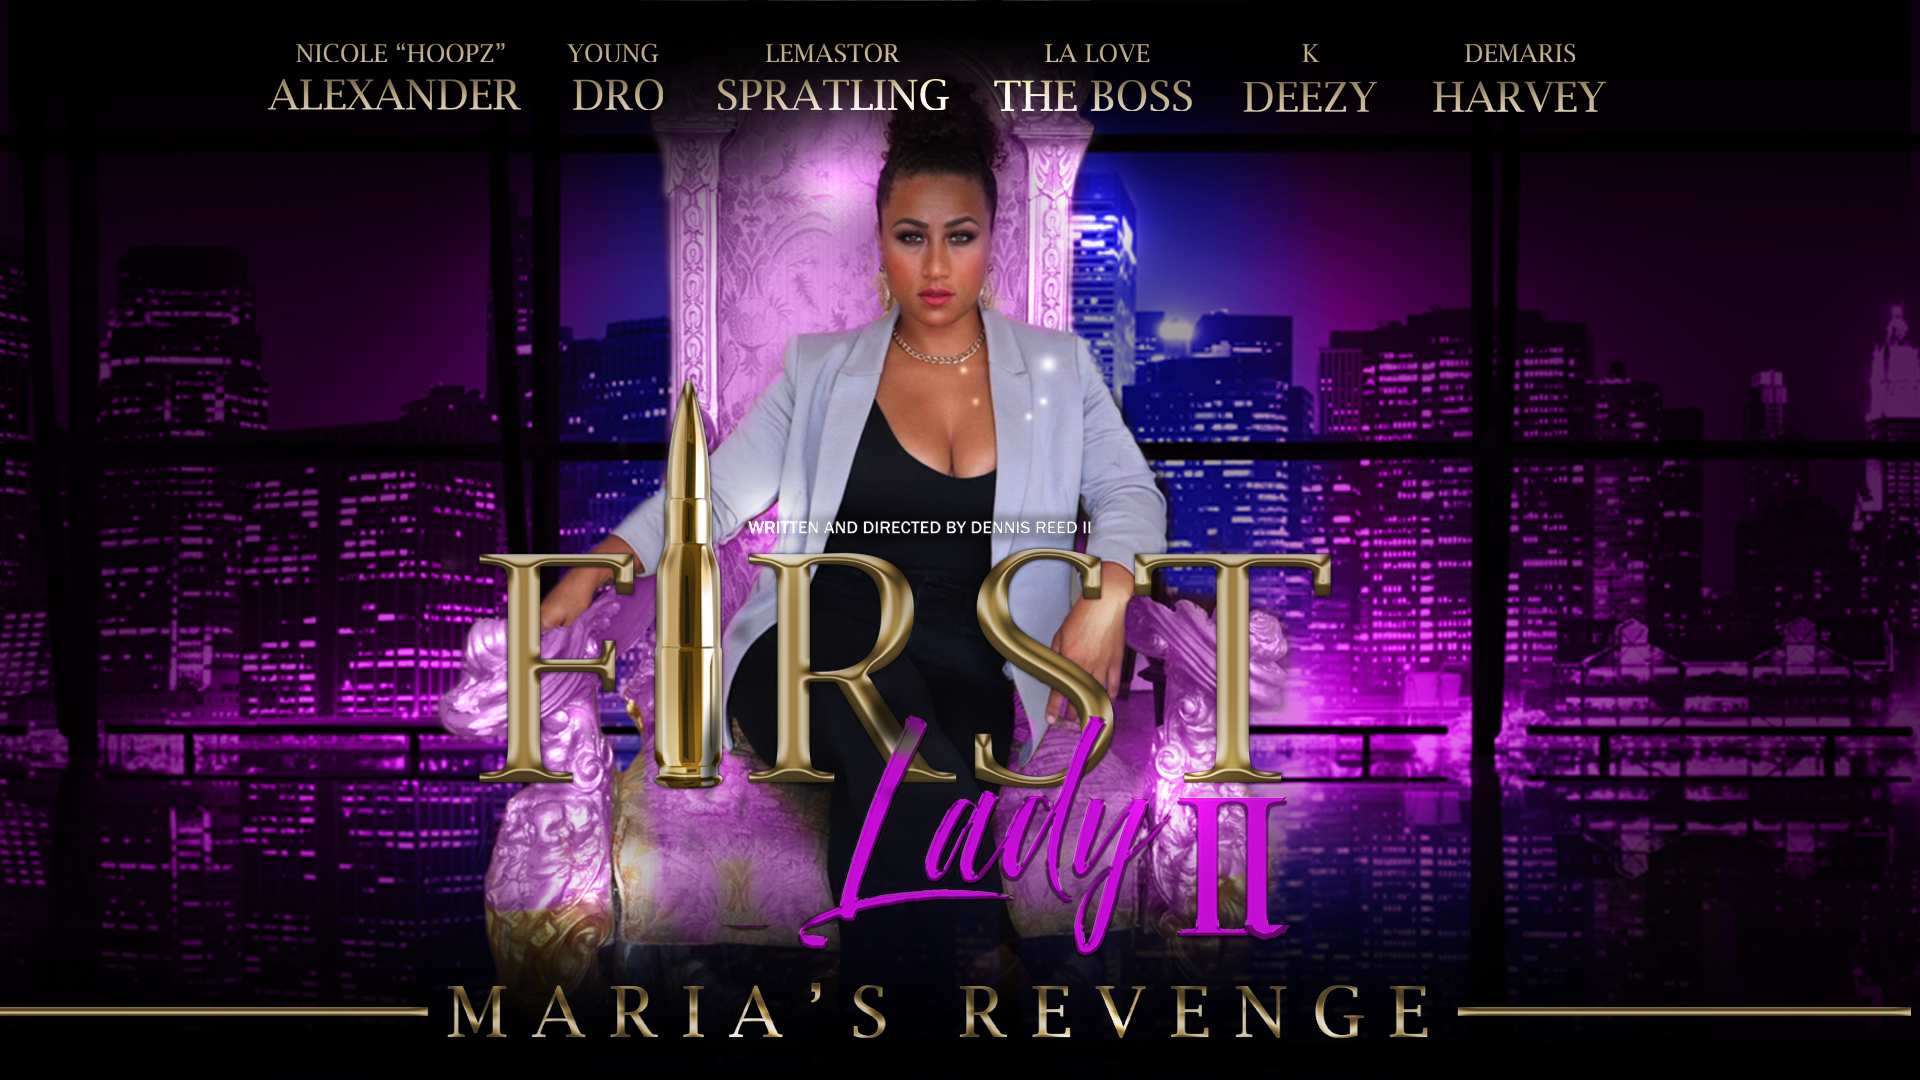 First Lady 2 Maria's Revenge